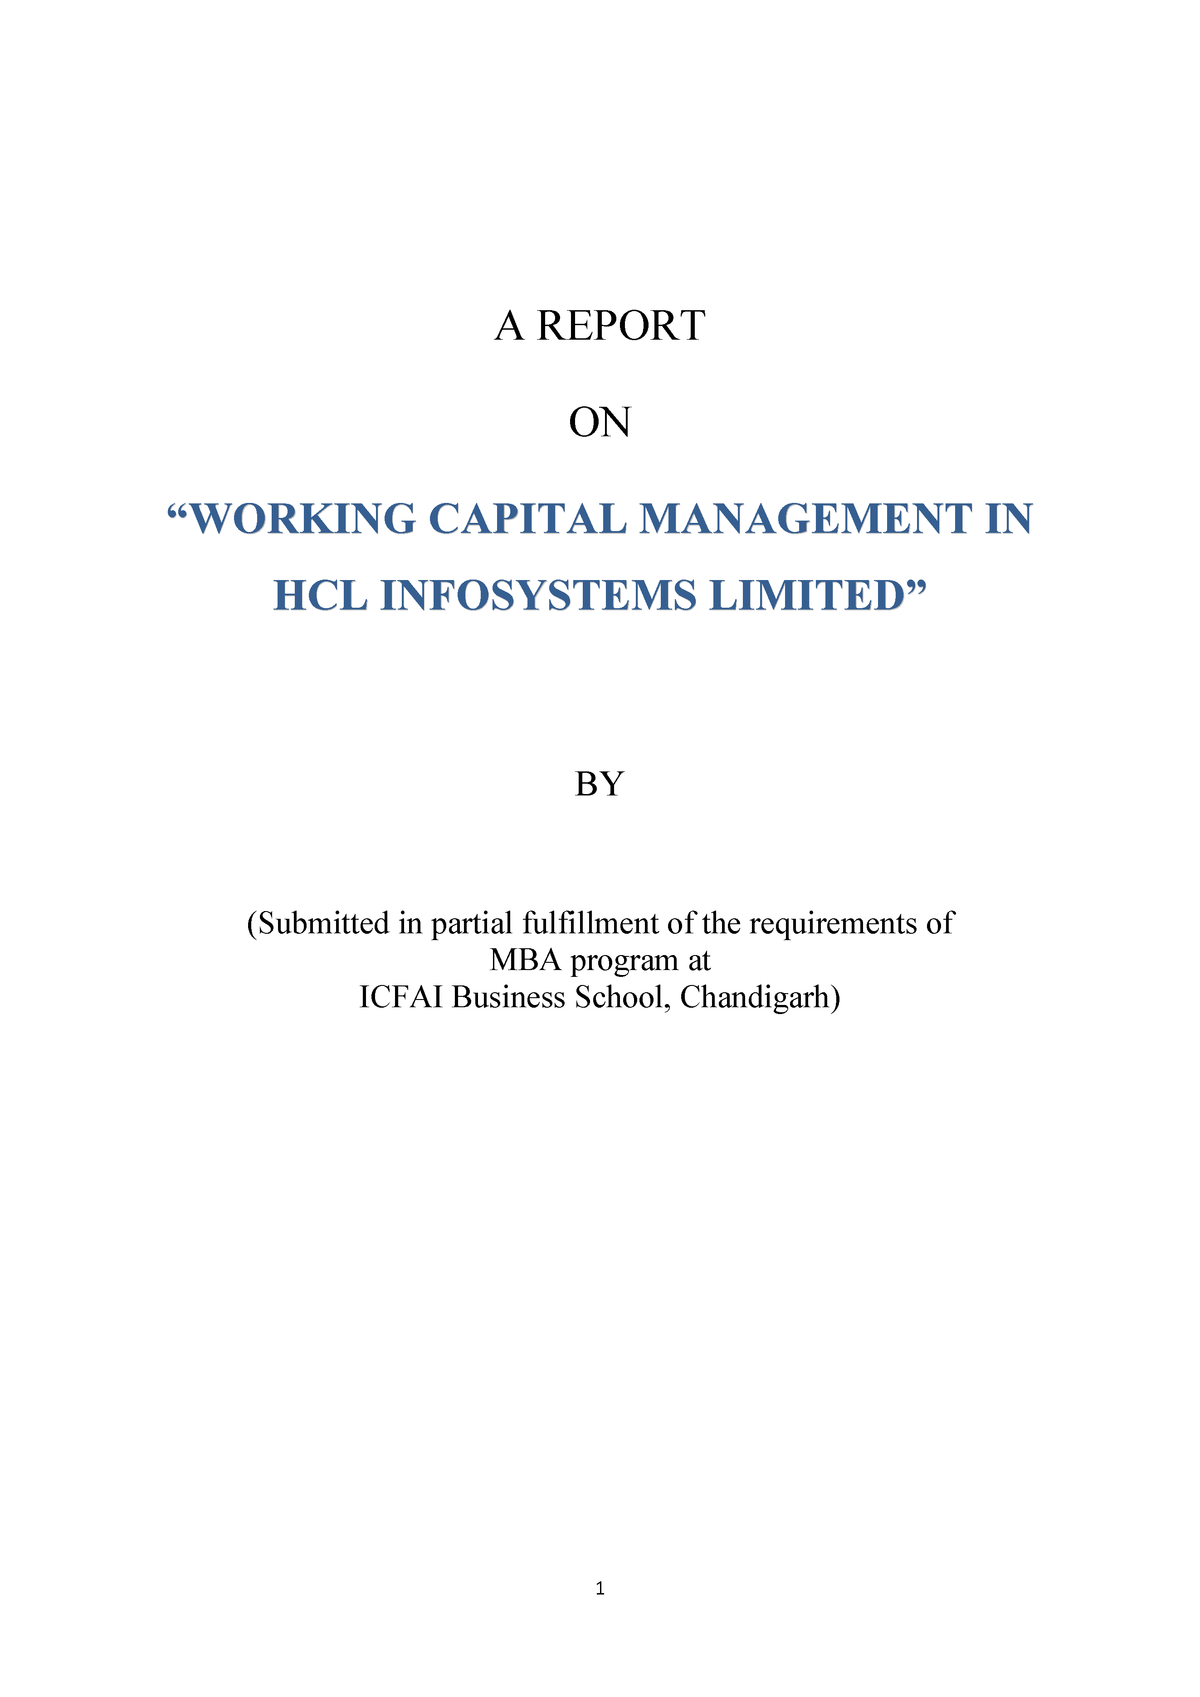 Project Report on working capital management in HCL - MBA